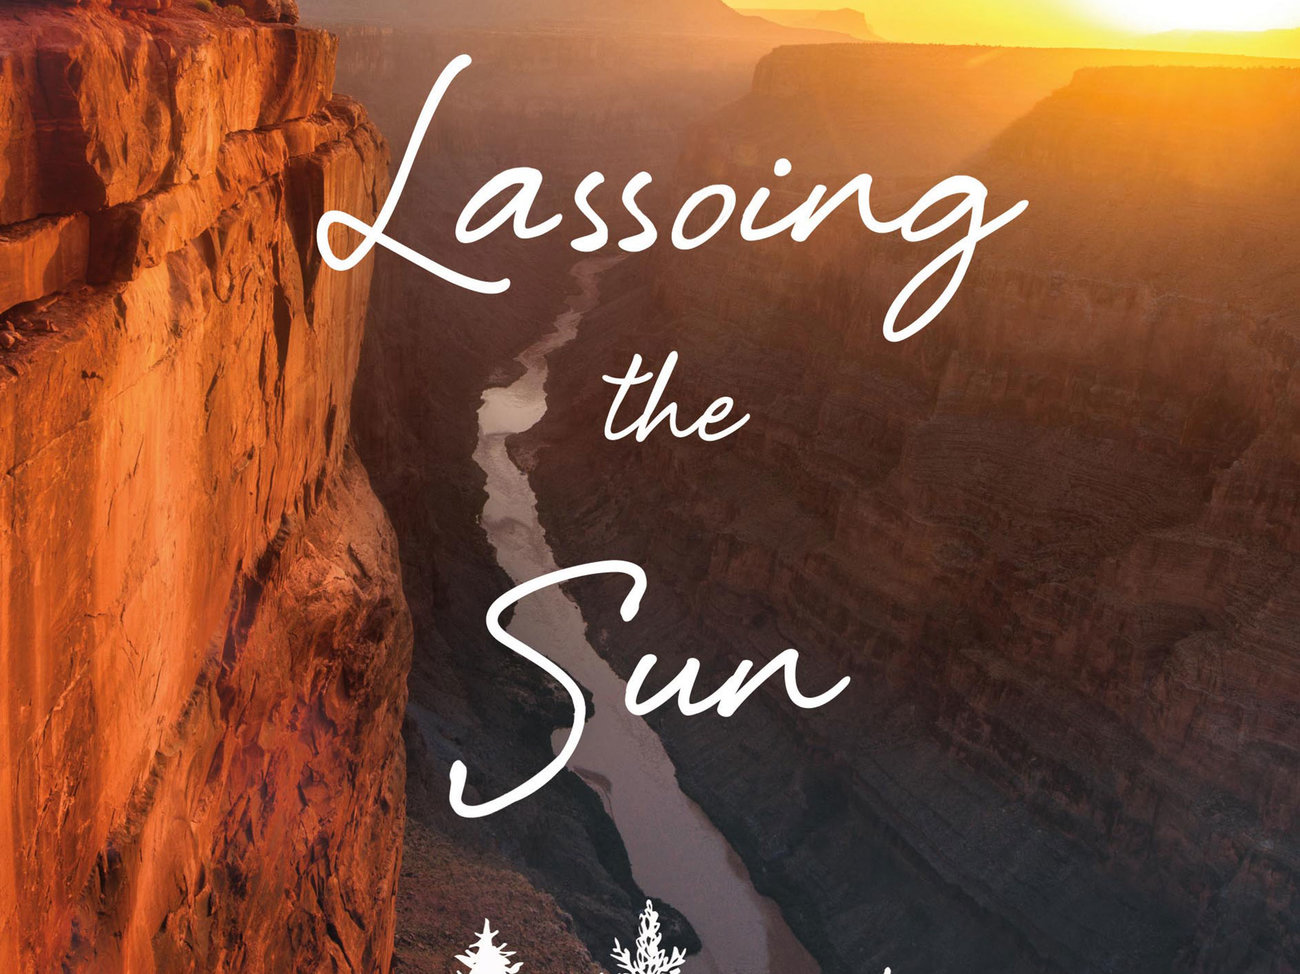 lassoing_the_sun-BOOK0416.jpg